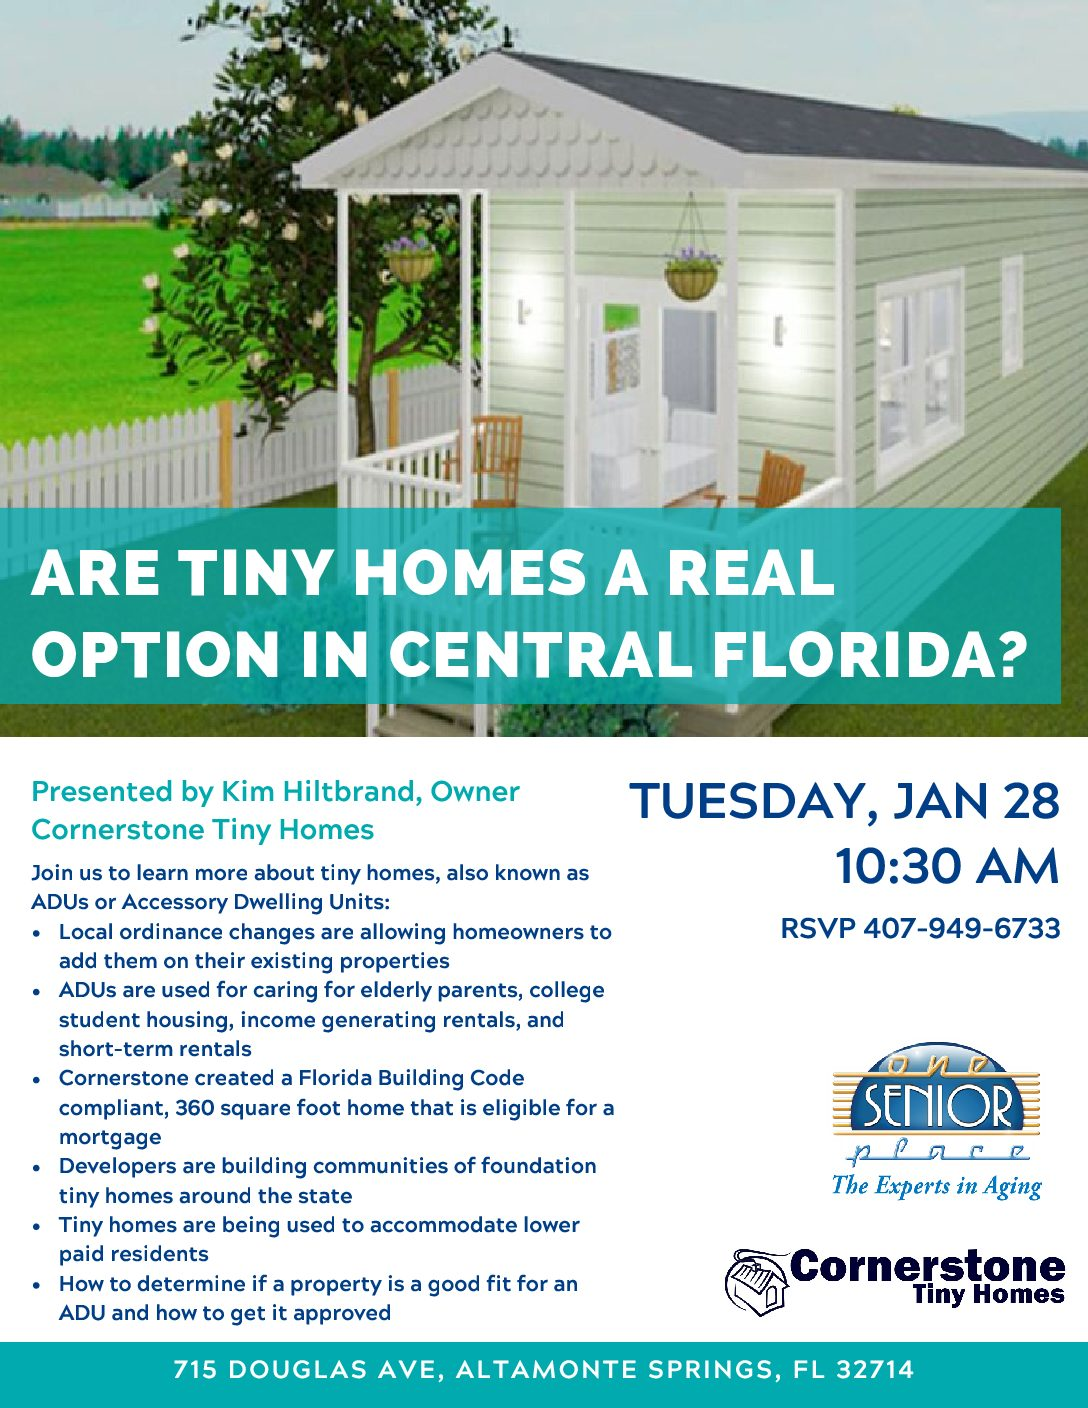 Are Tiny Homes a Real Option in Central Florida?